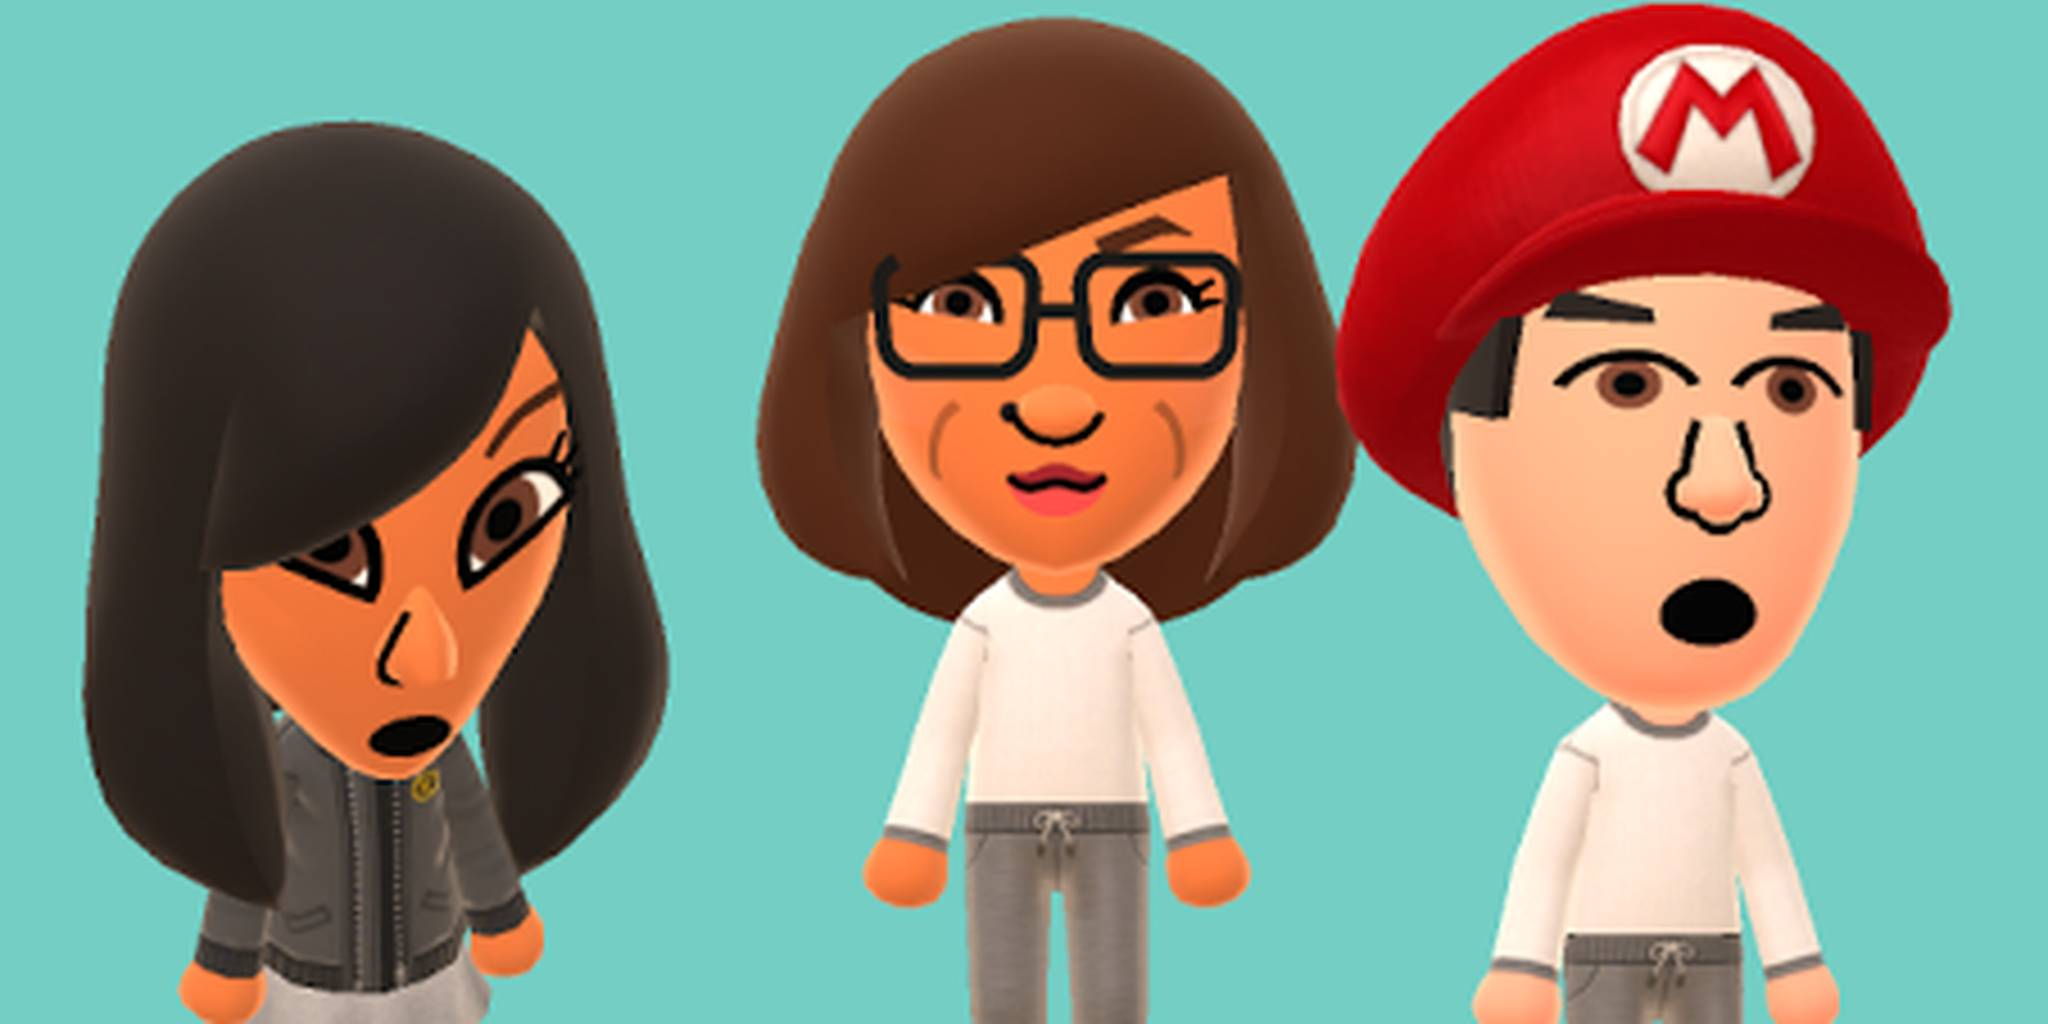 Pour one out for Miitomo, which shuts its doors after today screenshot